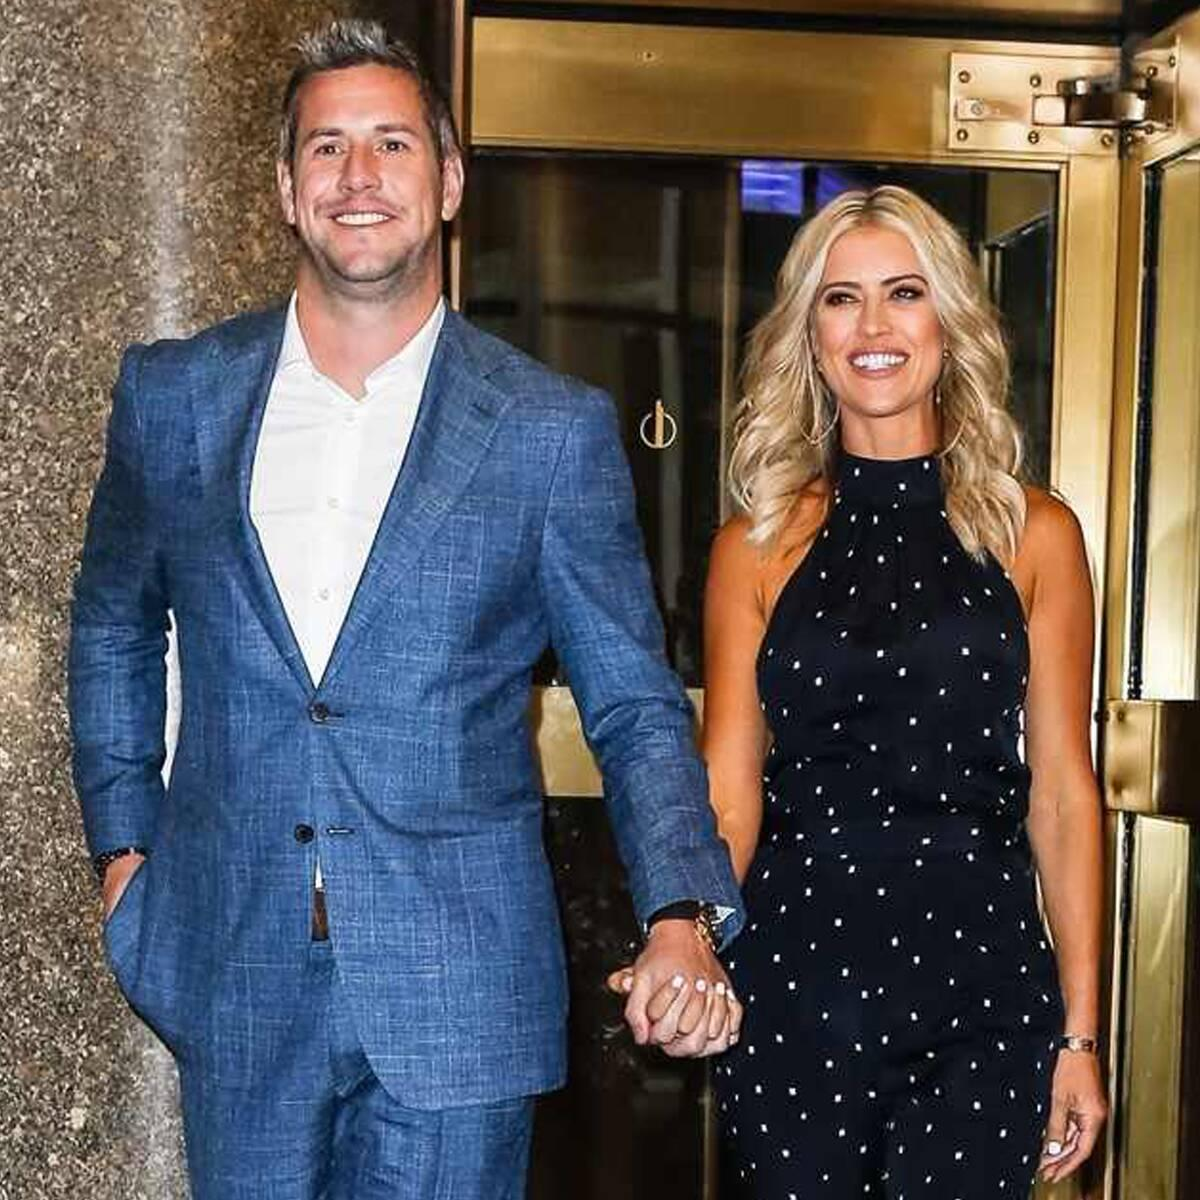 Ant Anstead Says He's Lost 23 Pounds Amid Christina Anstead Divorce